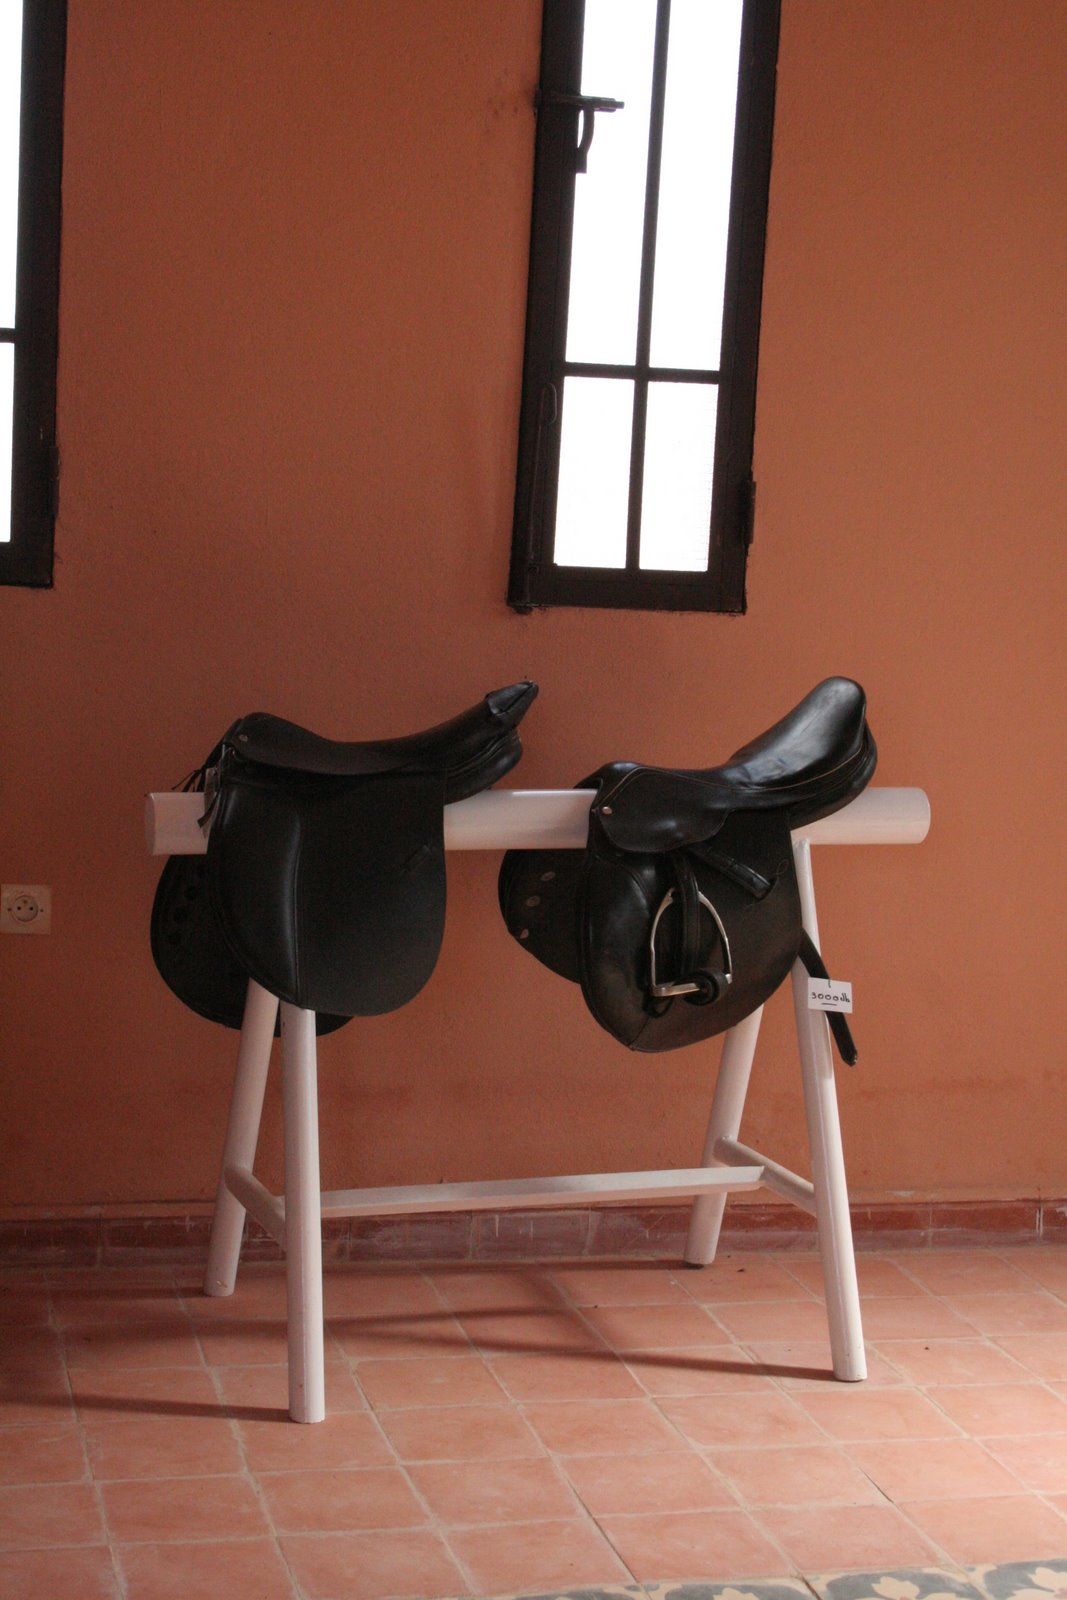 The good life in morocco les cavaliers d 39 al hamra for 2nd hand beauty salon equipment